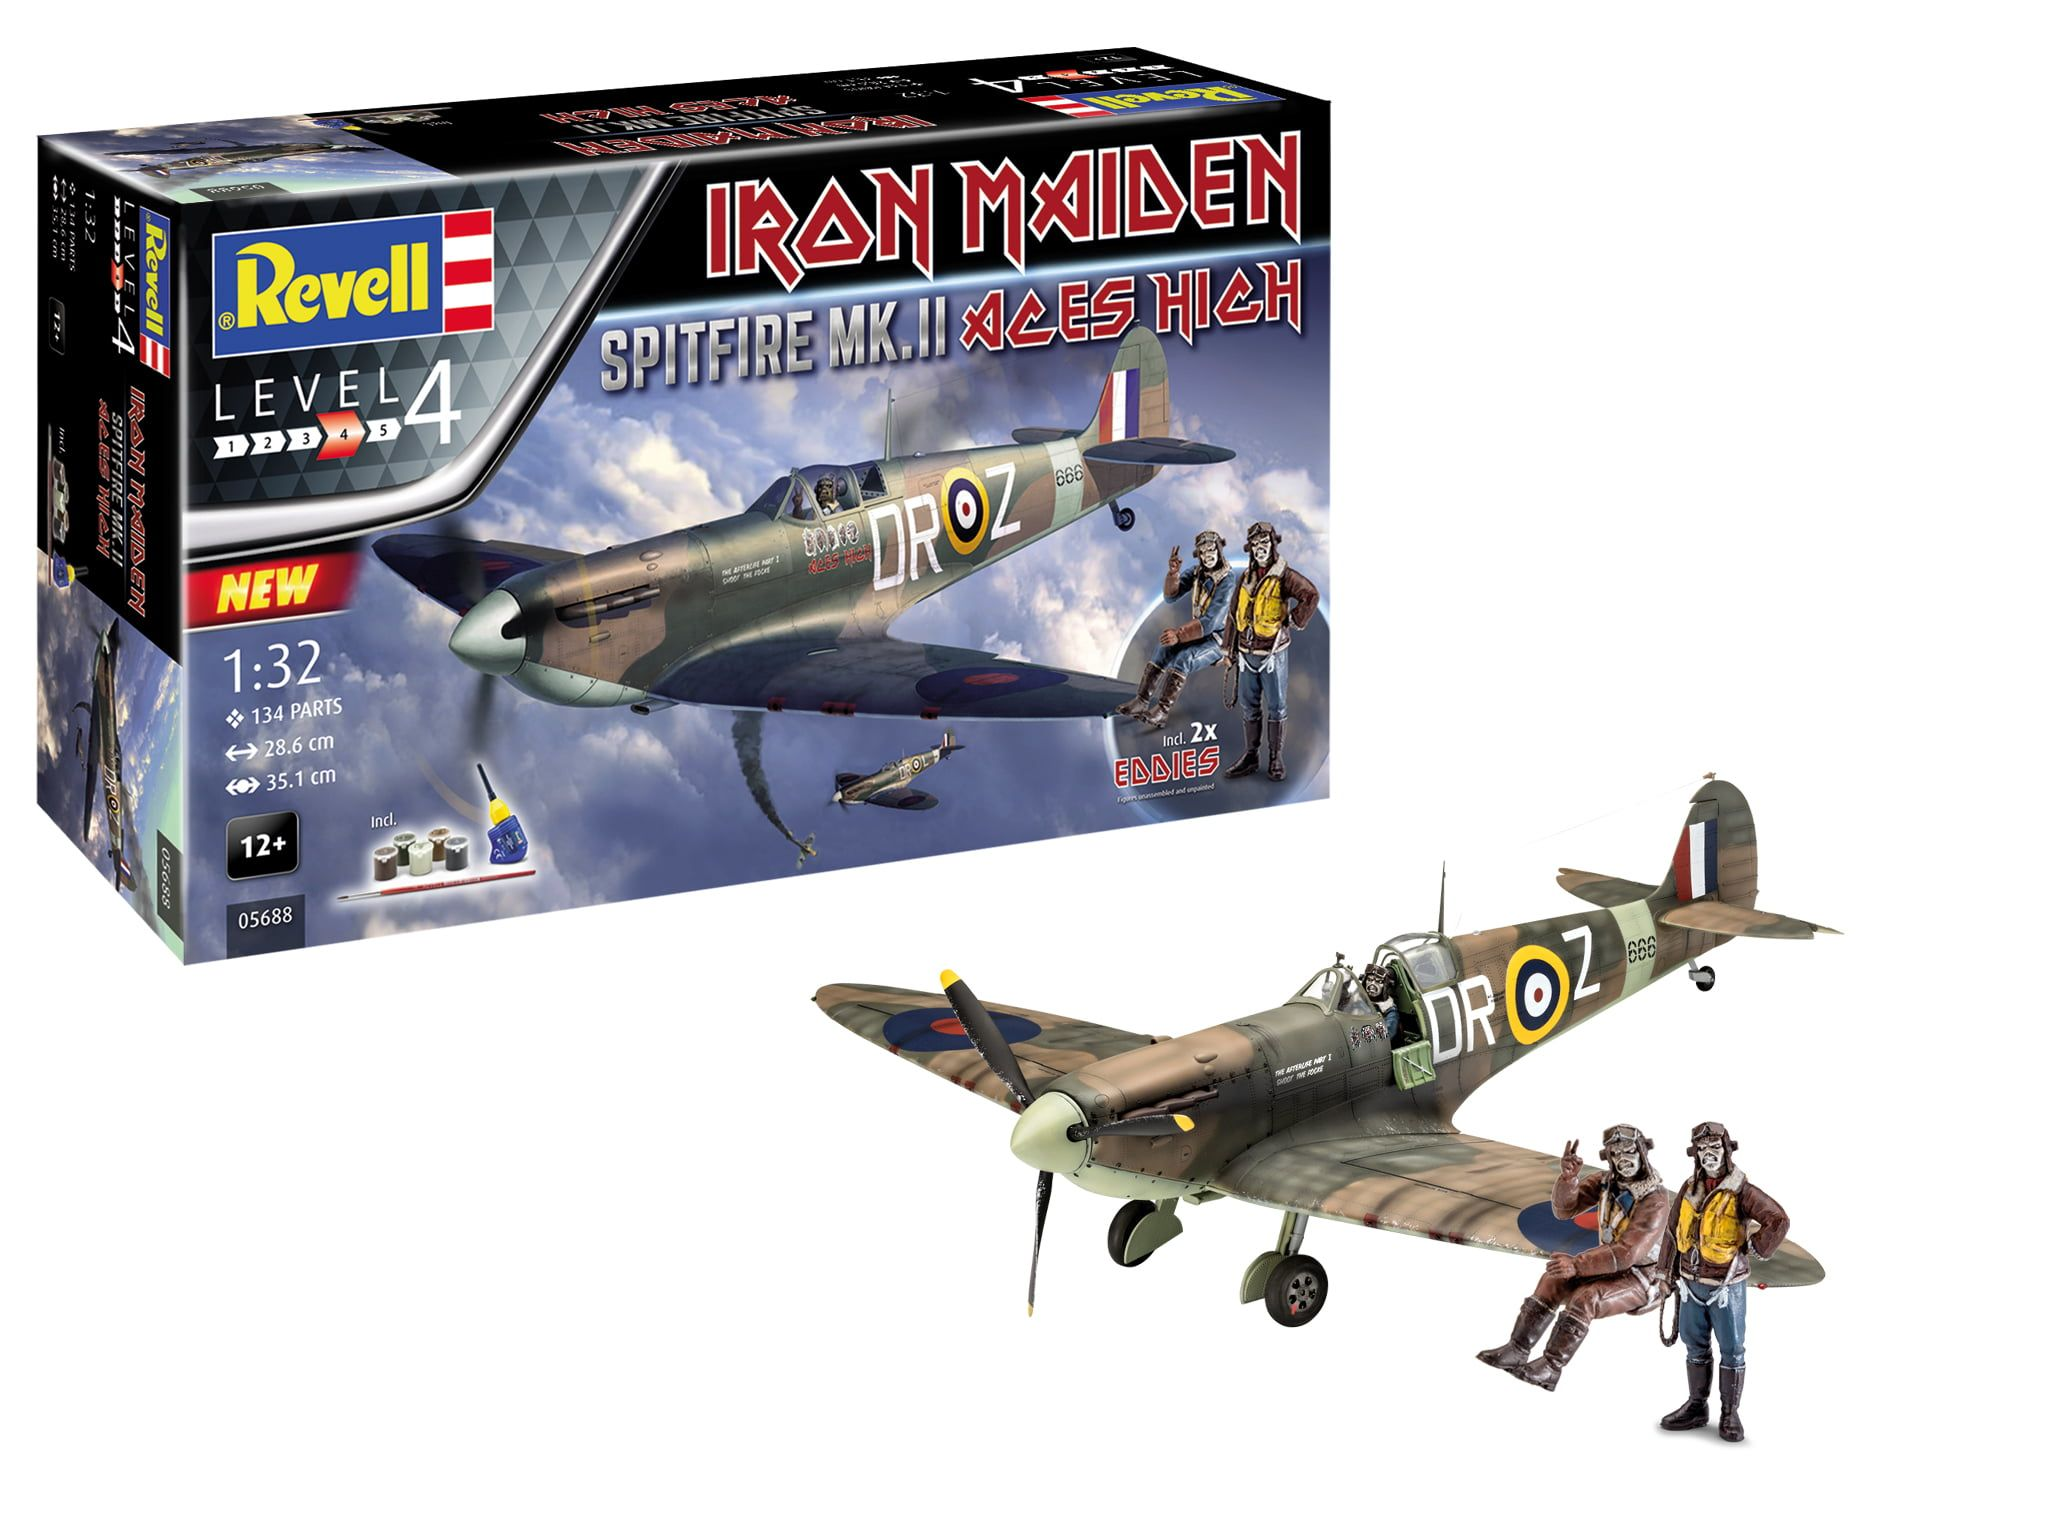 Revell Iron Maiden Spitfire Mk.II Aces High